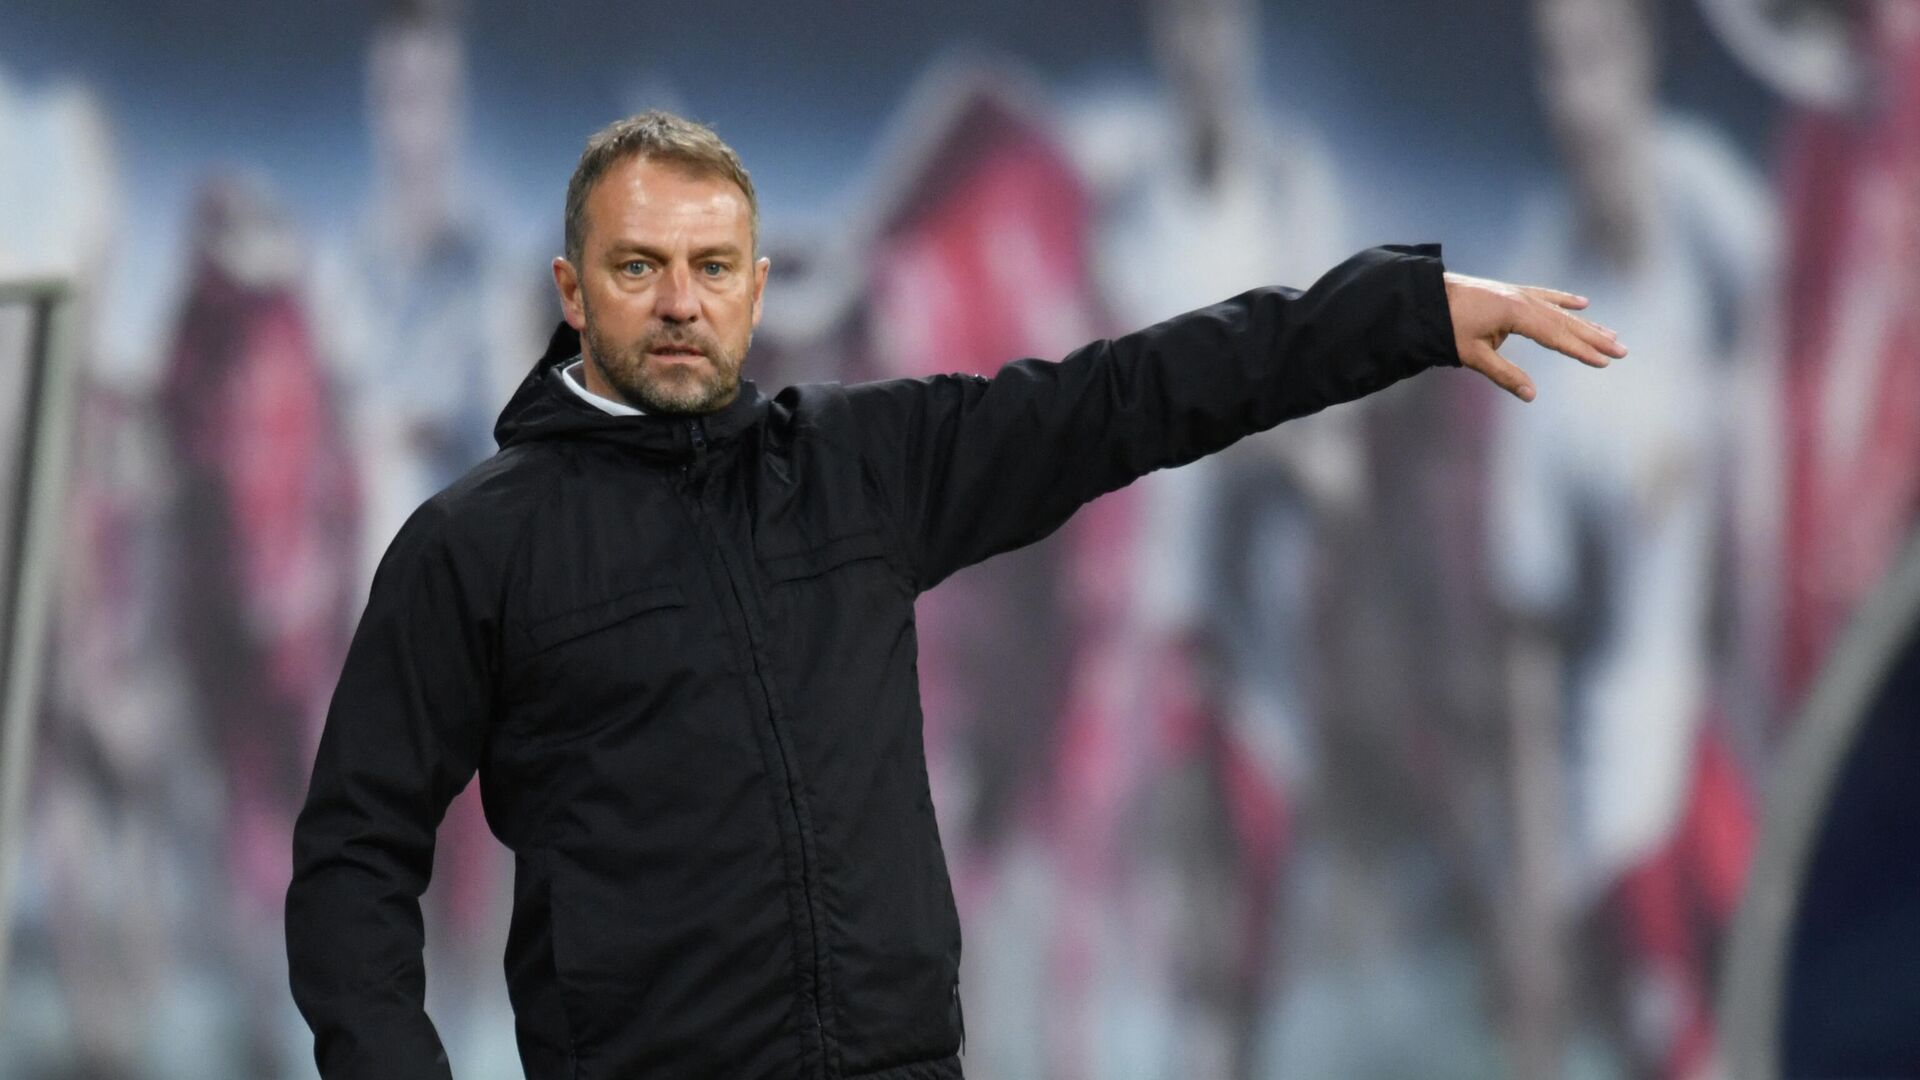 Bayern Munich's German head coach Hans-Dieter Flick reacts from the sidelines during the German first divison Bundesliga football match between RB Leipzig and FC Bayern Munich in Leipzig, eastern Germany, on April 3, 2021. (Photo by ANNEGRET HILSE / POOL / AFP) / DFL REGULATIONS PROHIBIT ANY USE OF PHOTOGRAPHS AS IMAGE SEQUENCES AND/OR QUASI-VIDEO - РИА Новости, 1920, 12.04.2021